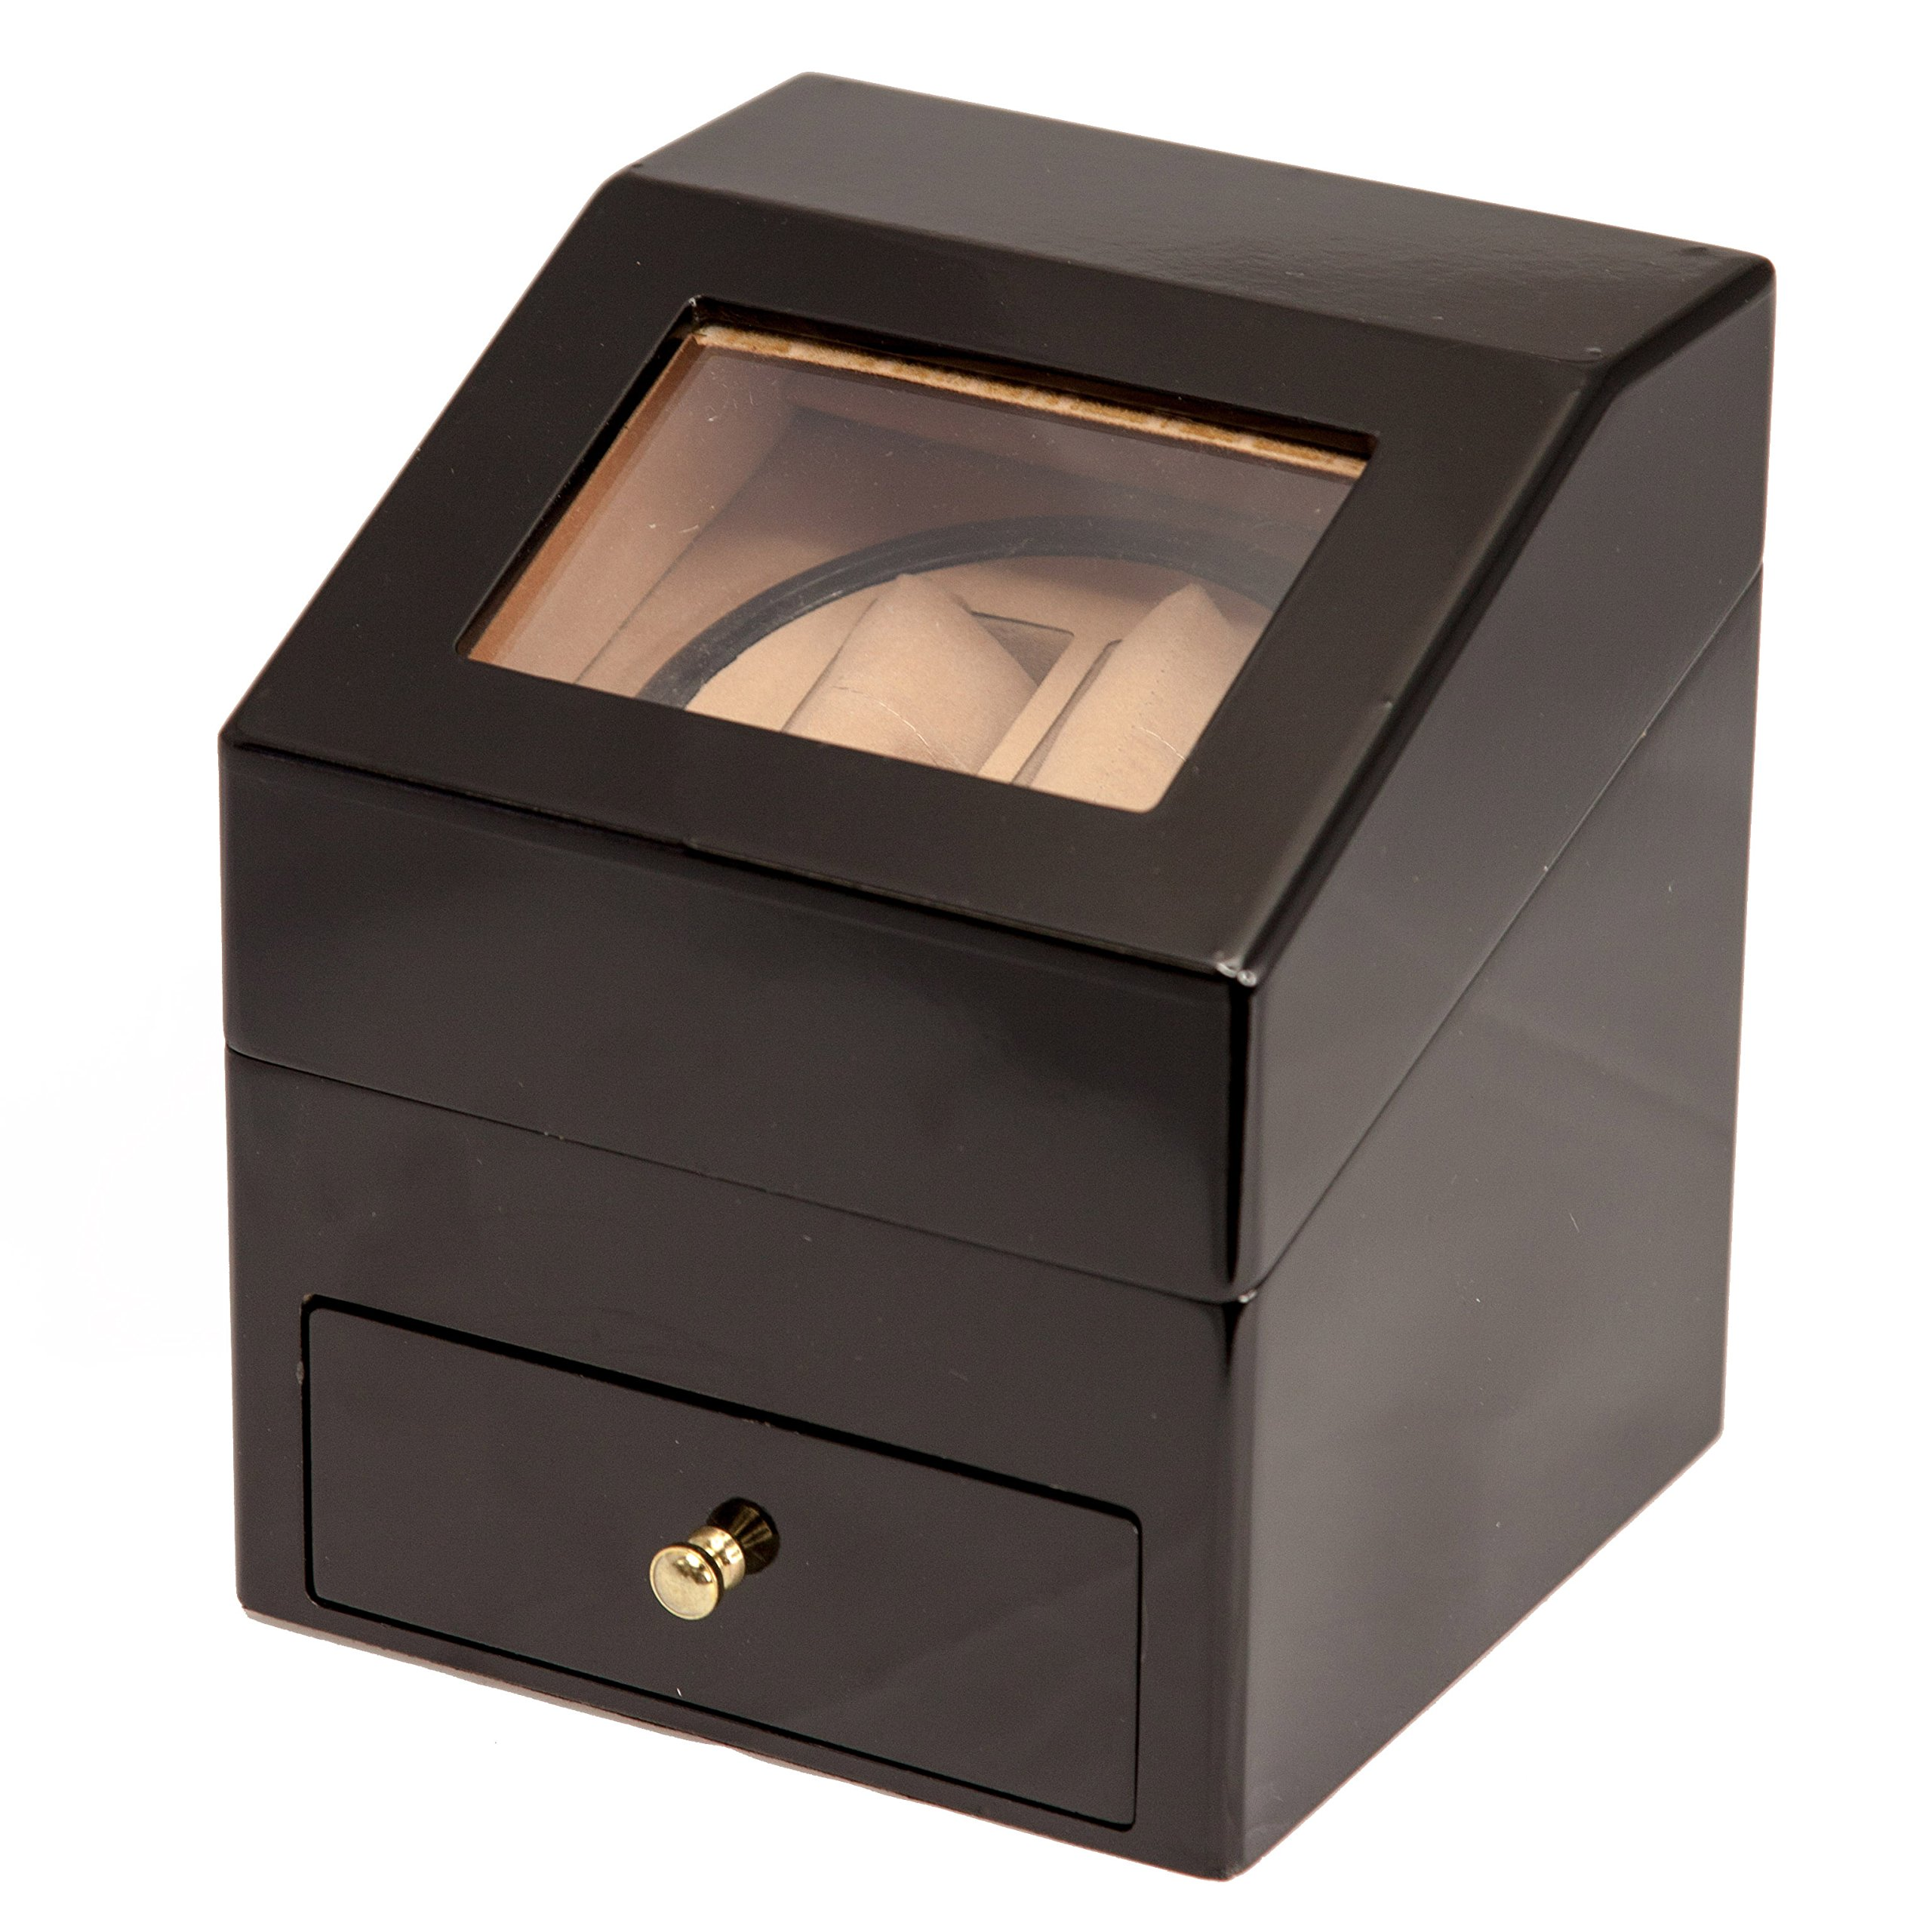 BRAND NEW BLACK WOOD 2+2 AUTOMATIC DUAL / DOUBLE WATCH WINDER DISPLAY STORAGE BOX BATTERY OR AC/DC POWER